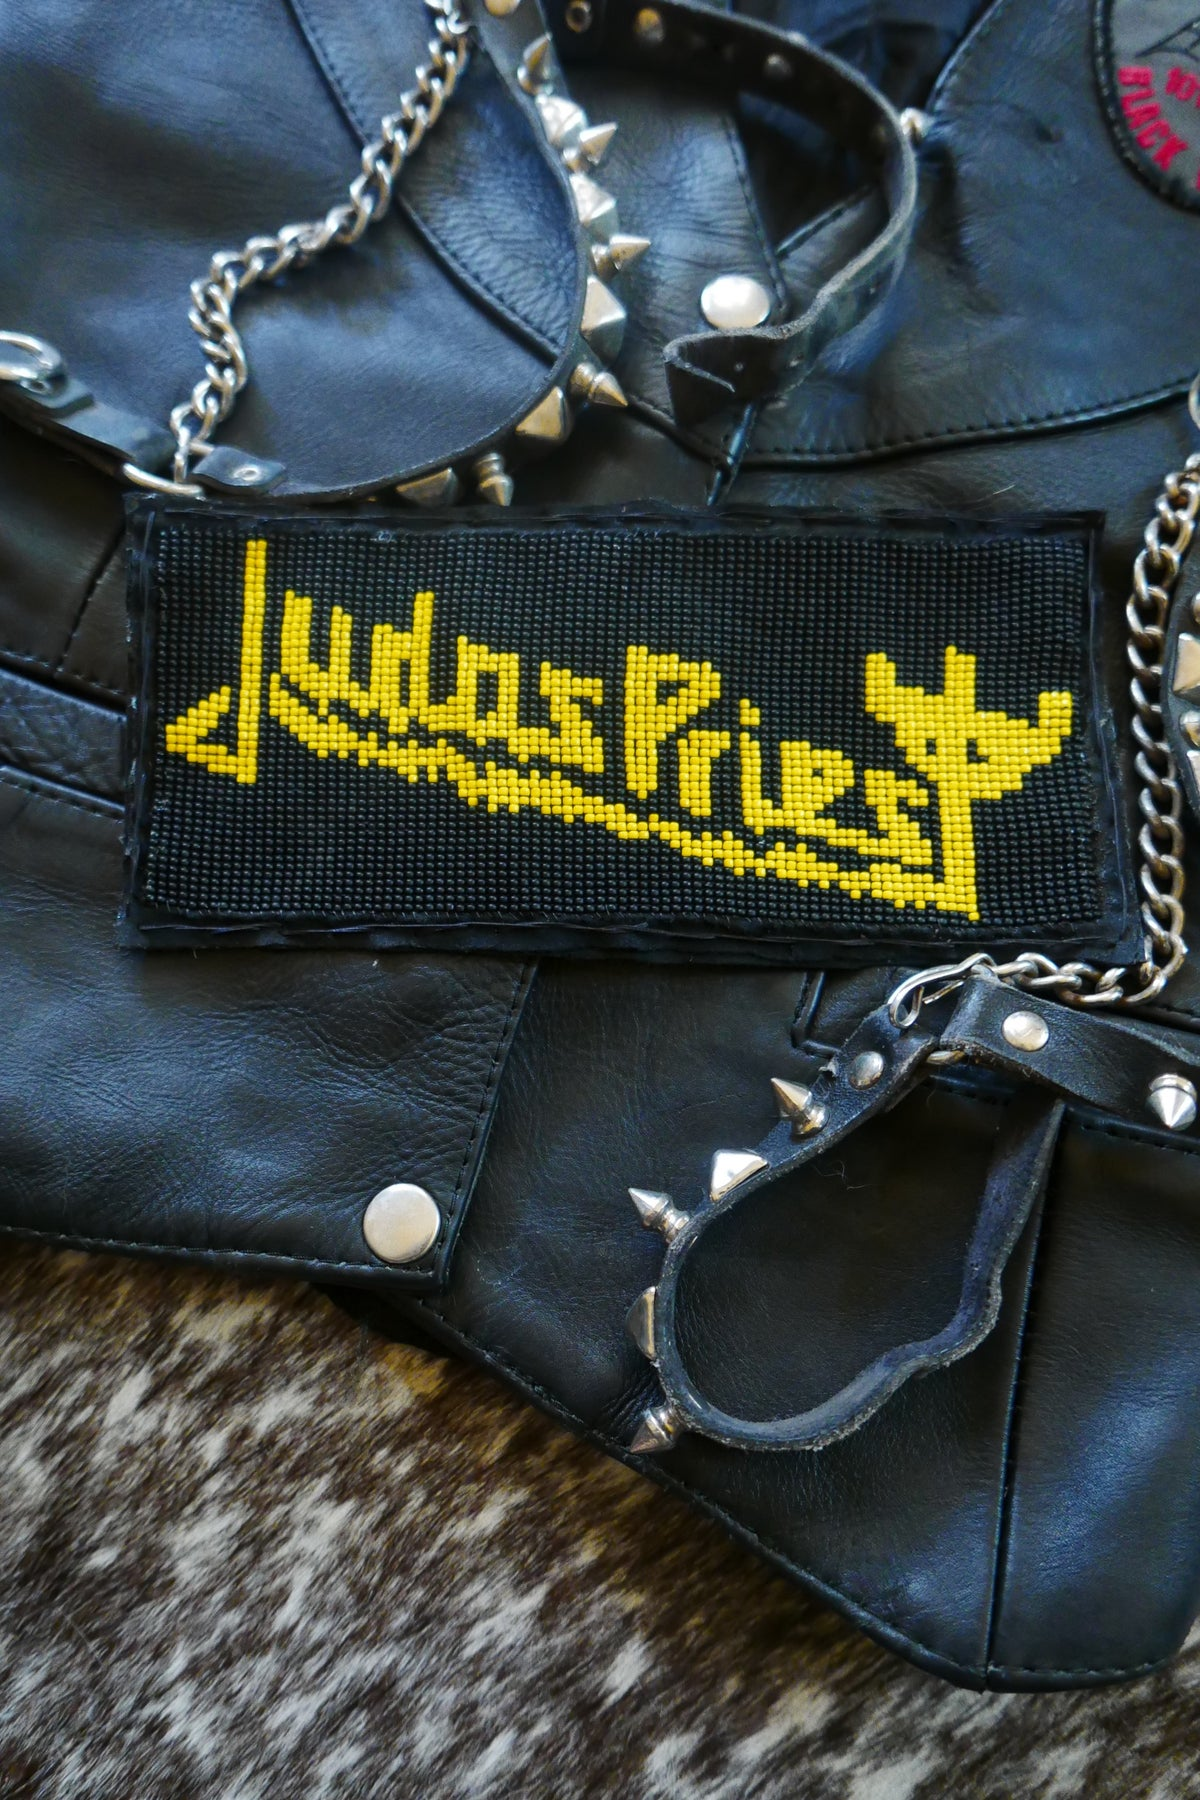 Image of Judas Priest patch